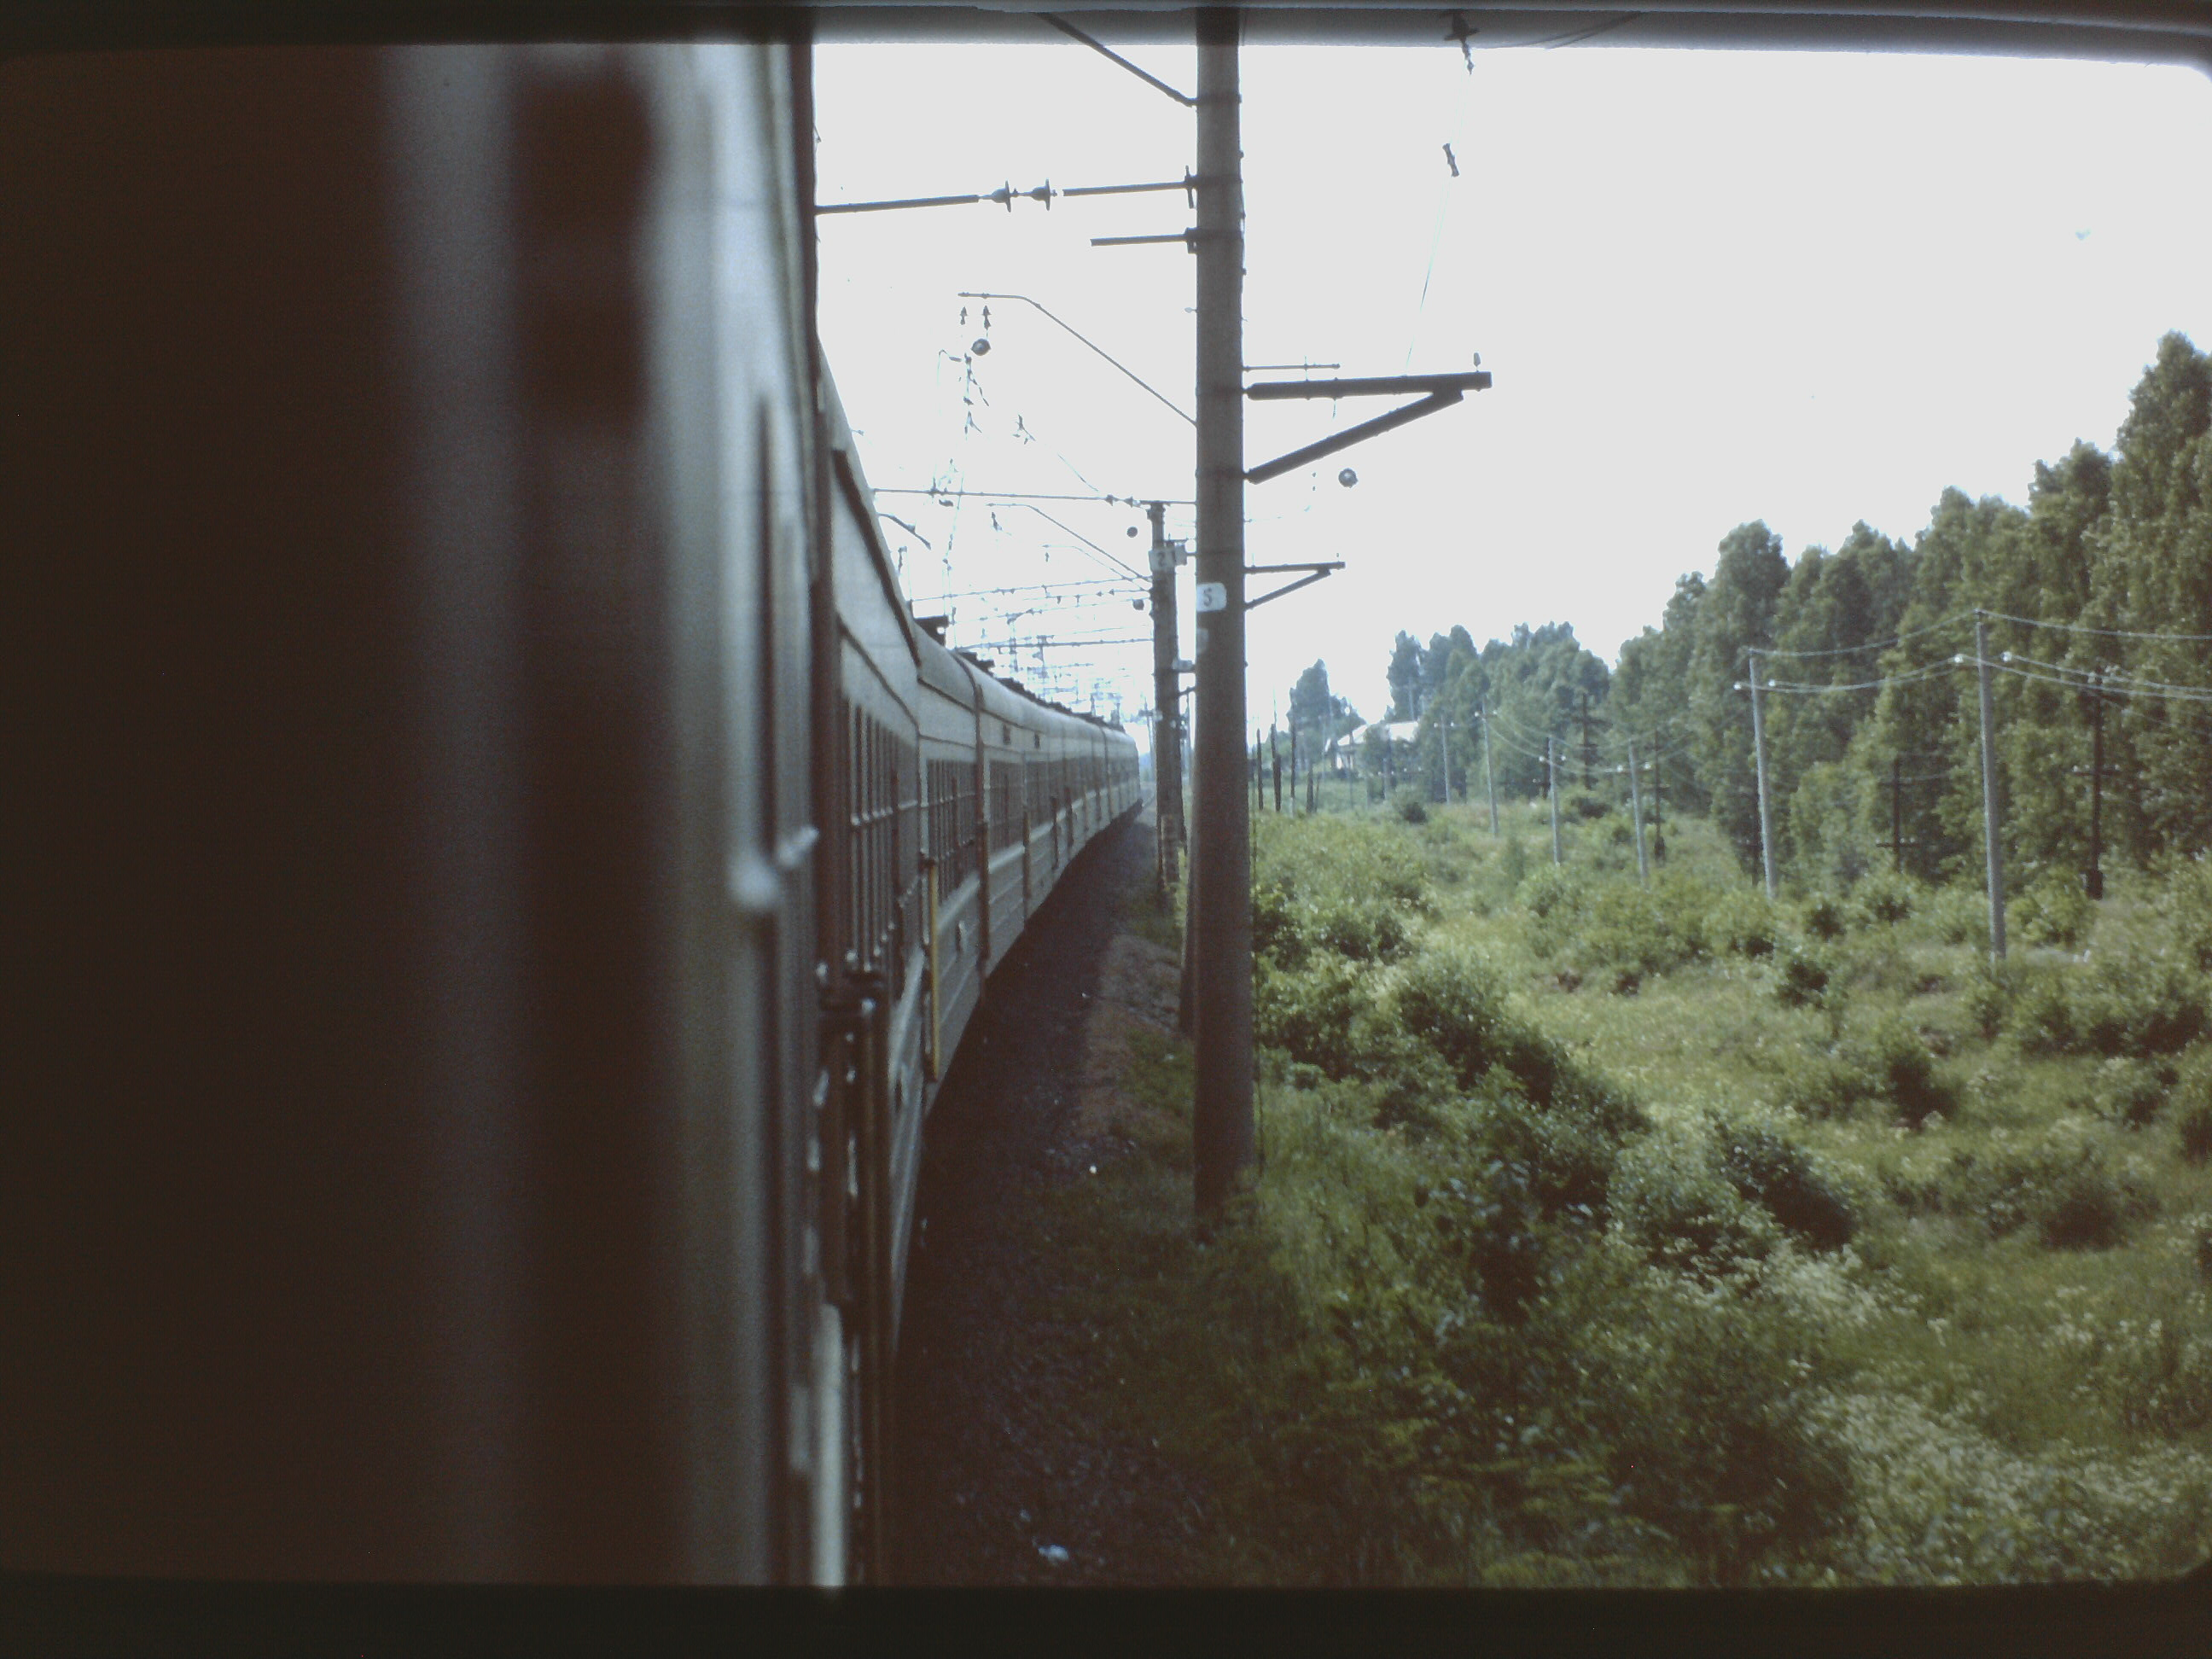 1983 the trans siberian express